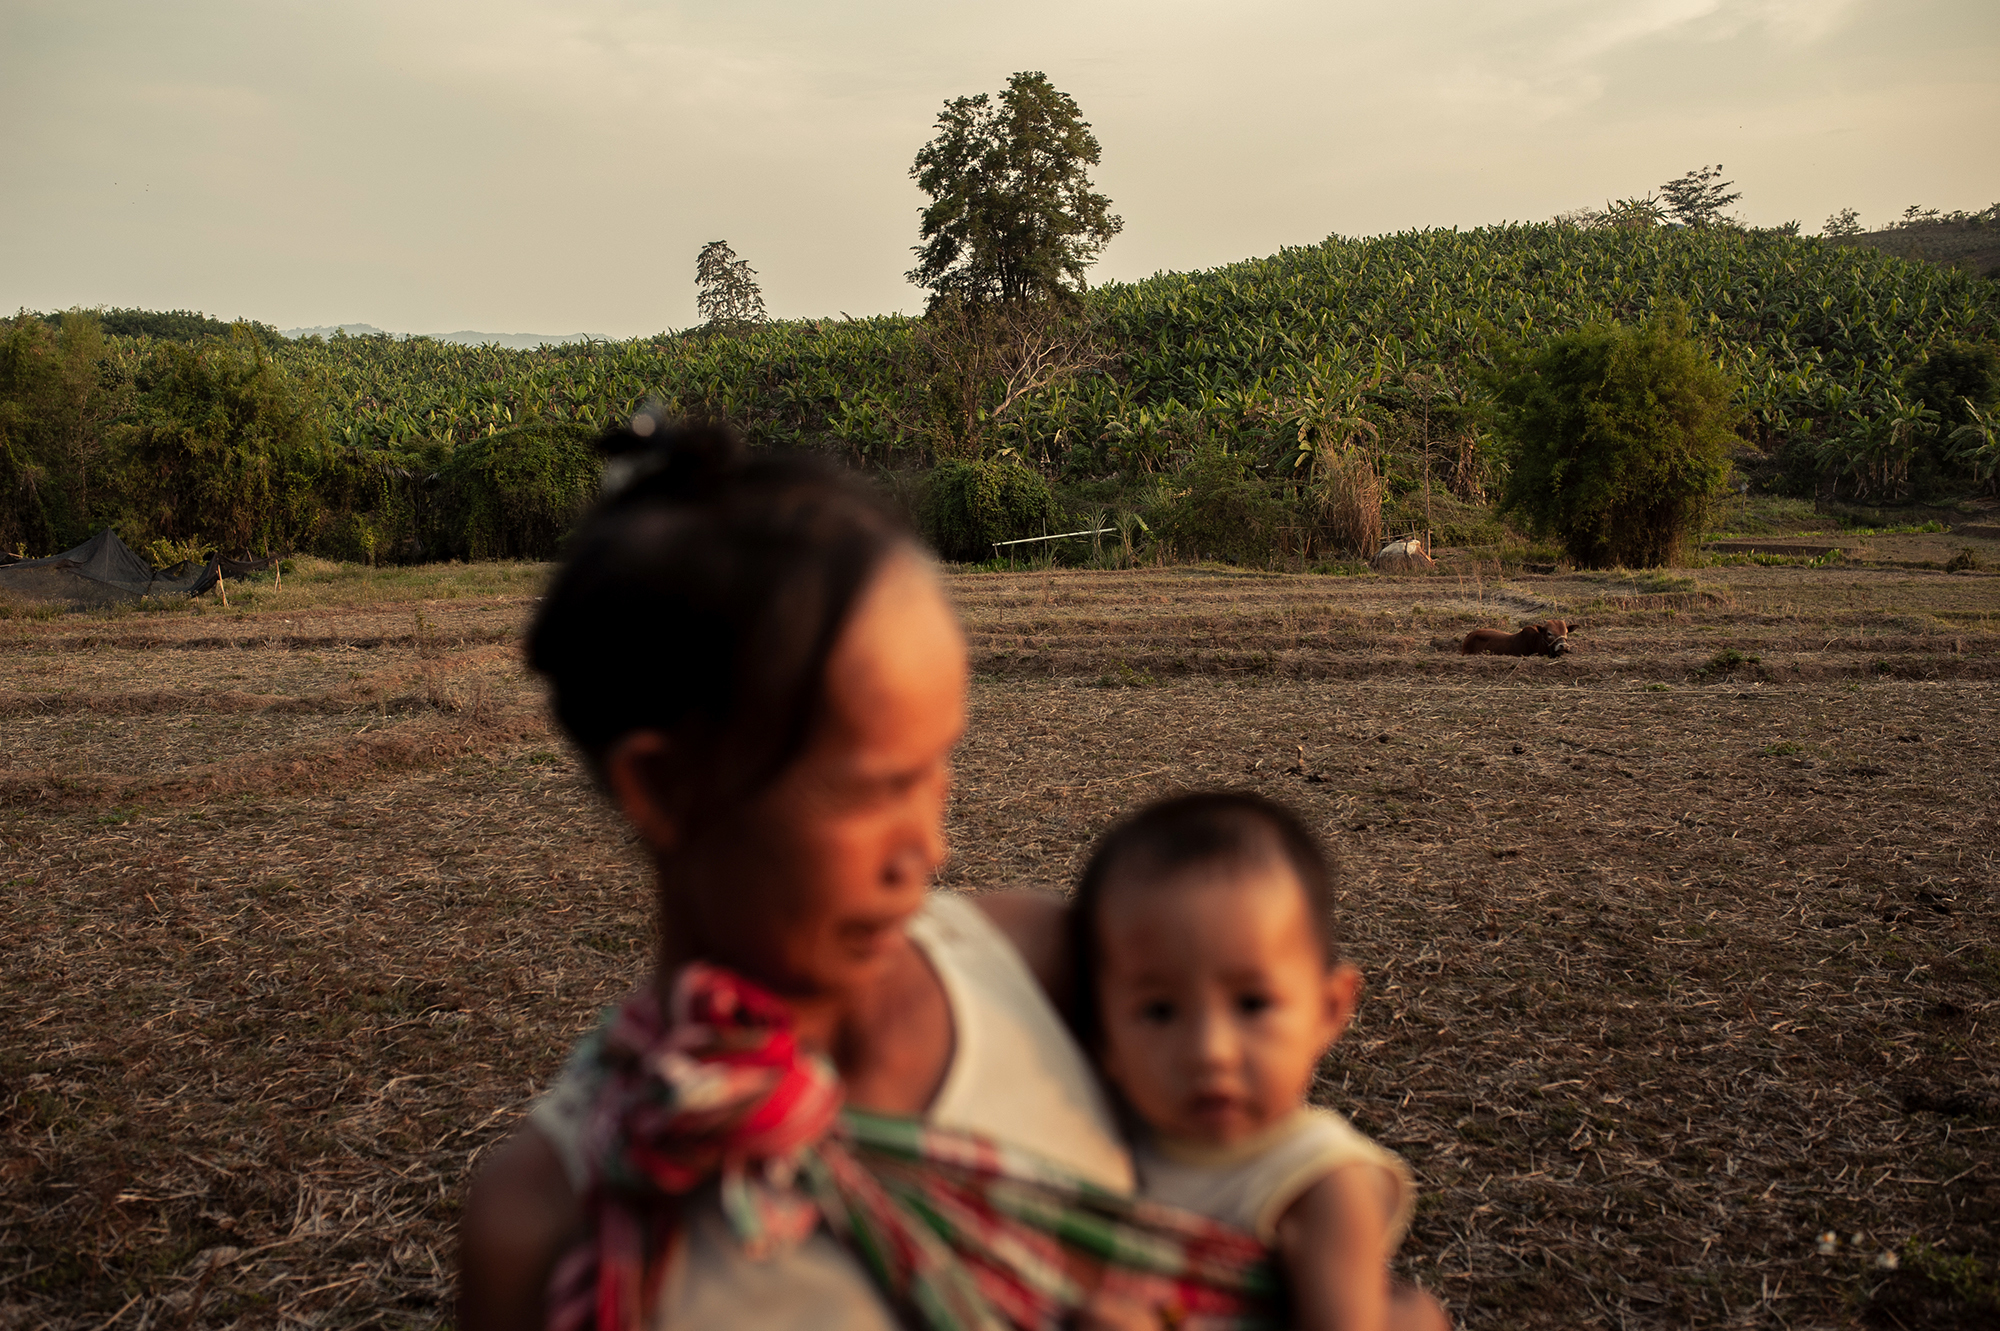 Tiam holds her grandchild in front of the banana plantation that she rents out to the Chinese investor 5 years ago, in Bokeo district for 78 dollars per rai per year. (Image: Visarut Sankham/China Dialogue)